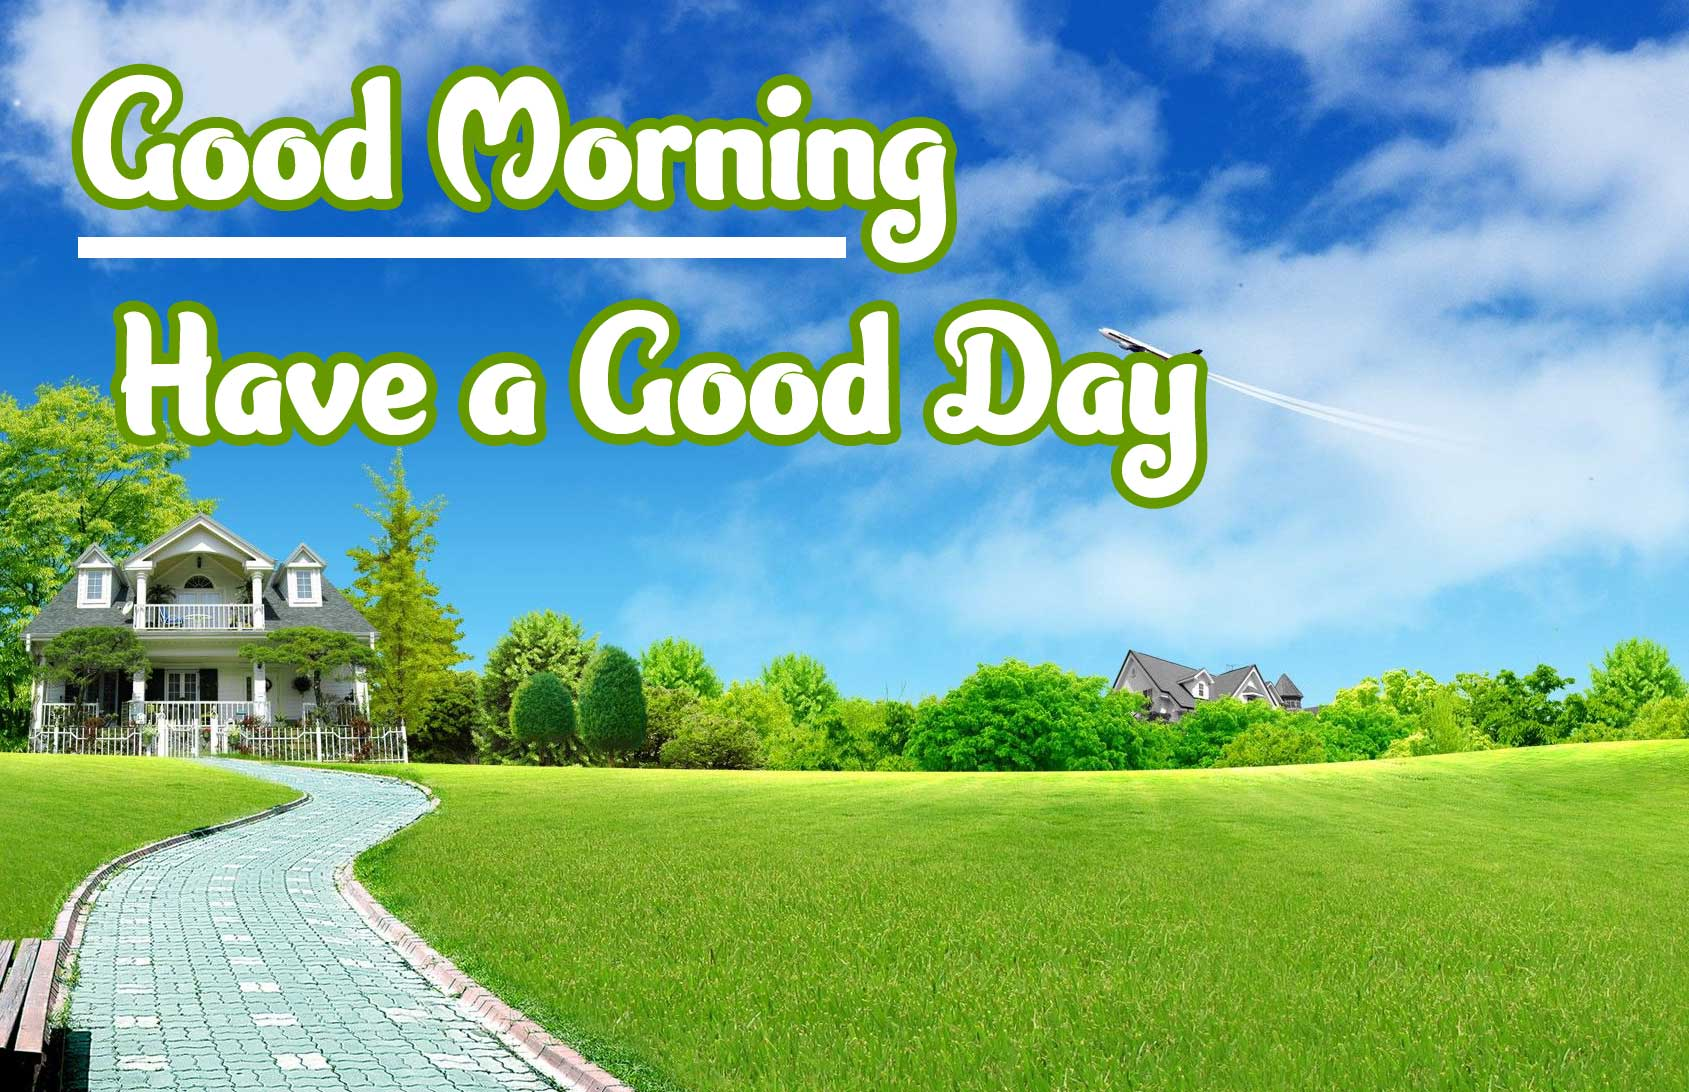 Good Morning Images 4K 1080p Wallpaper Free Download